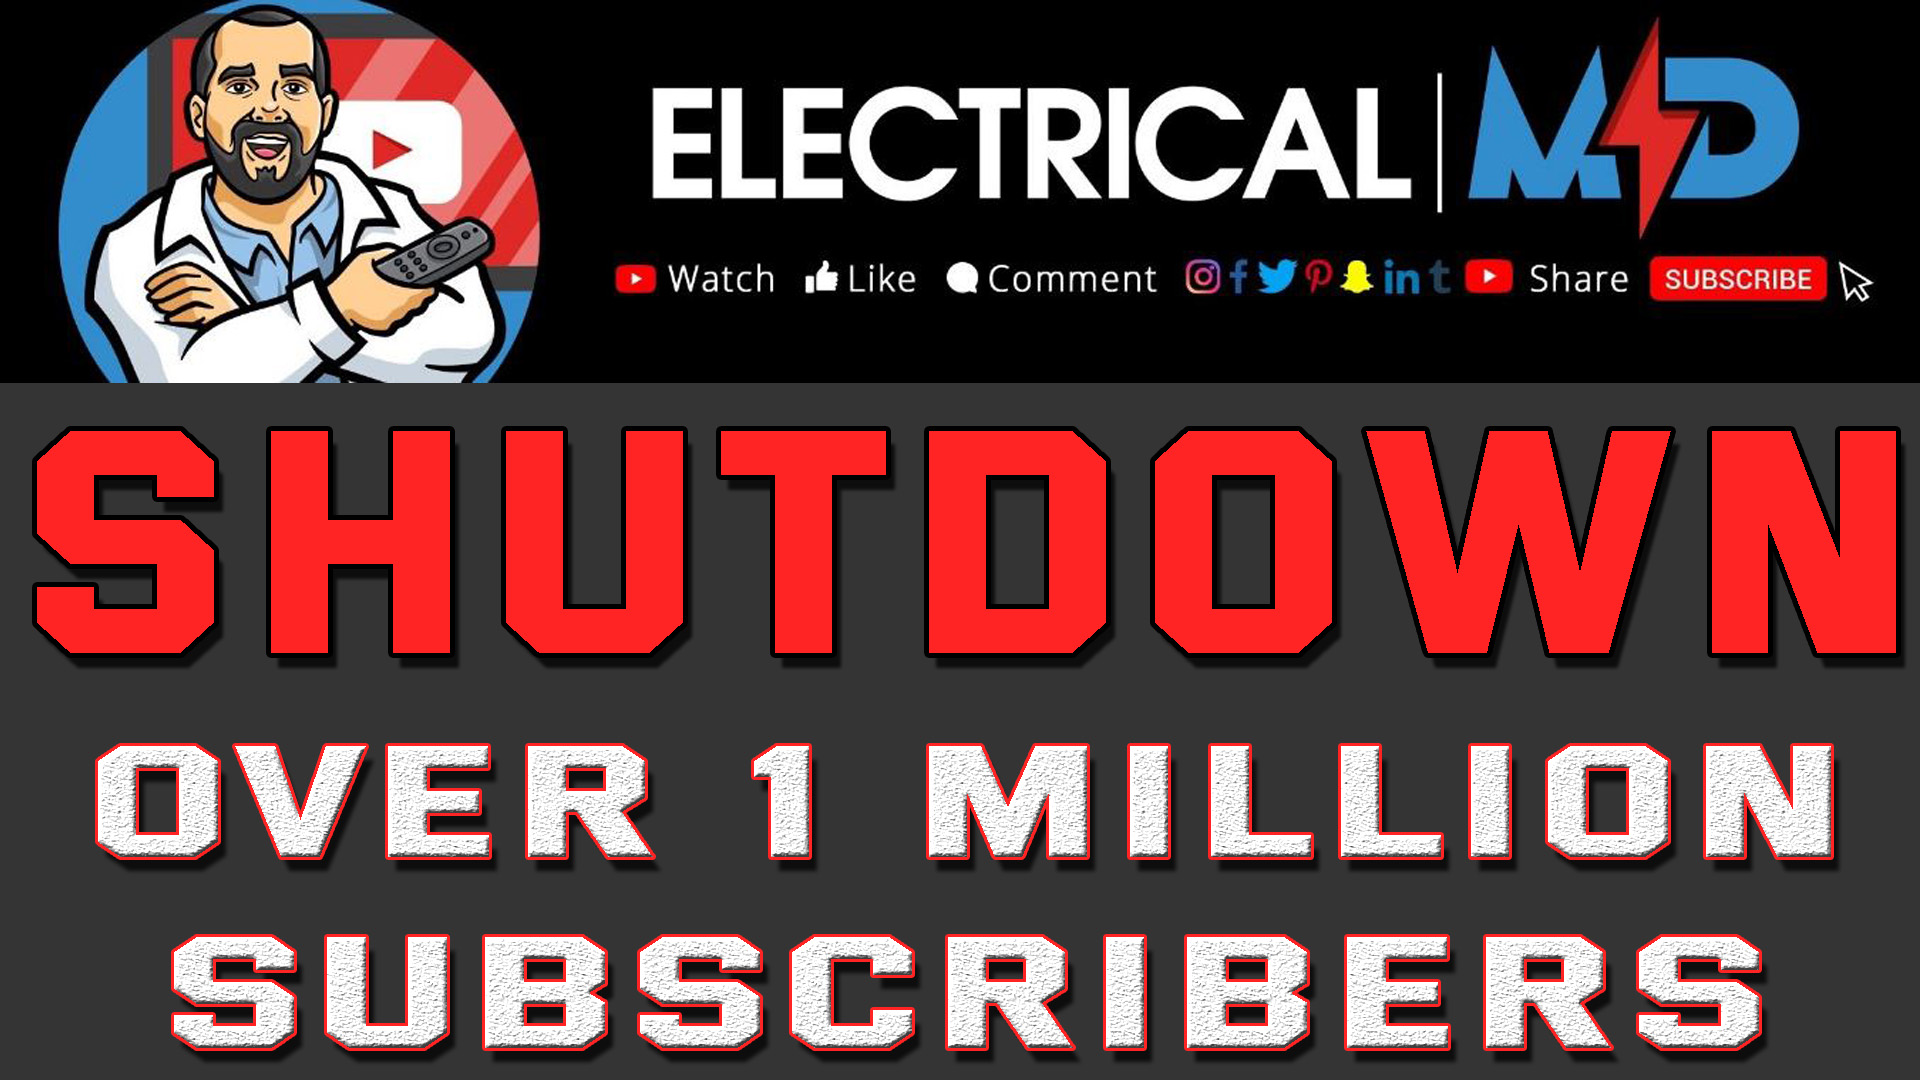 Electrical MD YouTube Shutdown